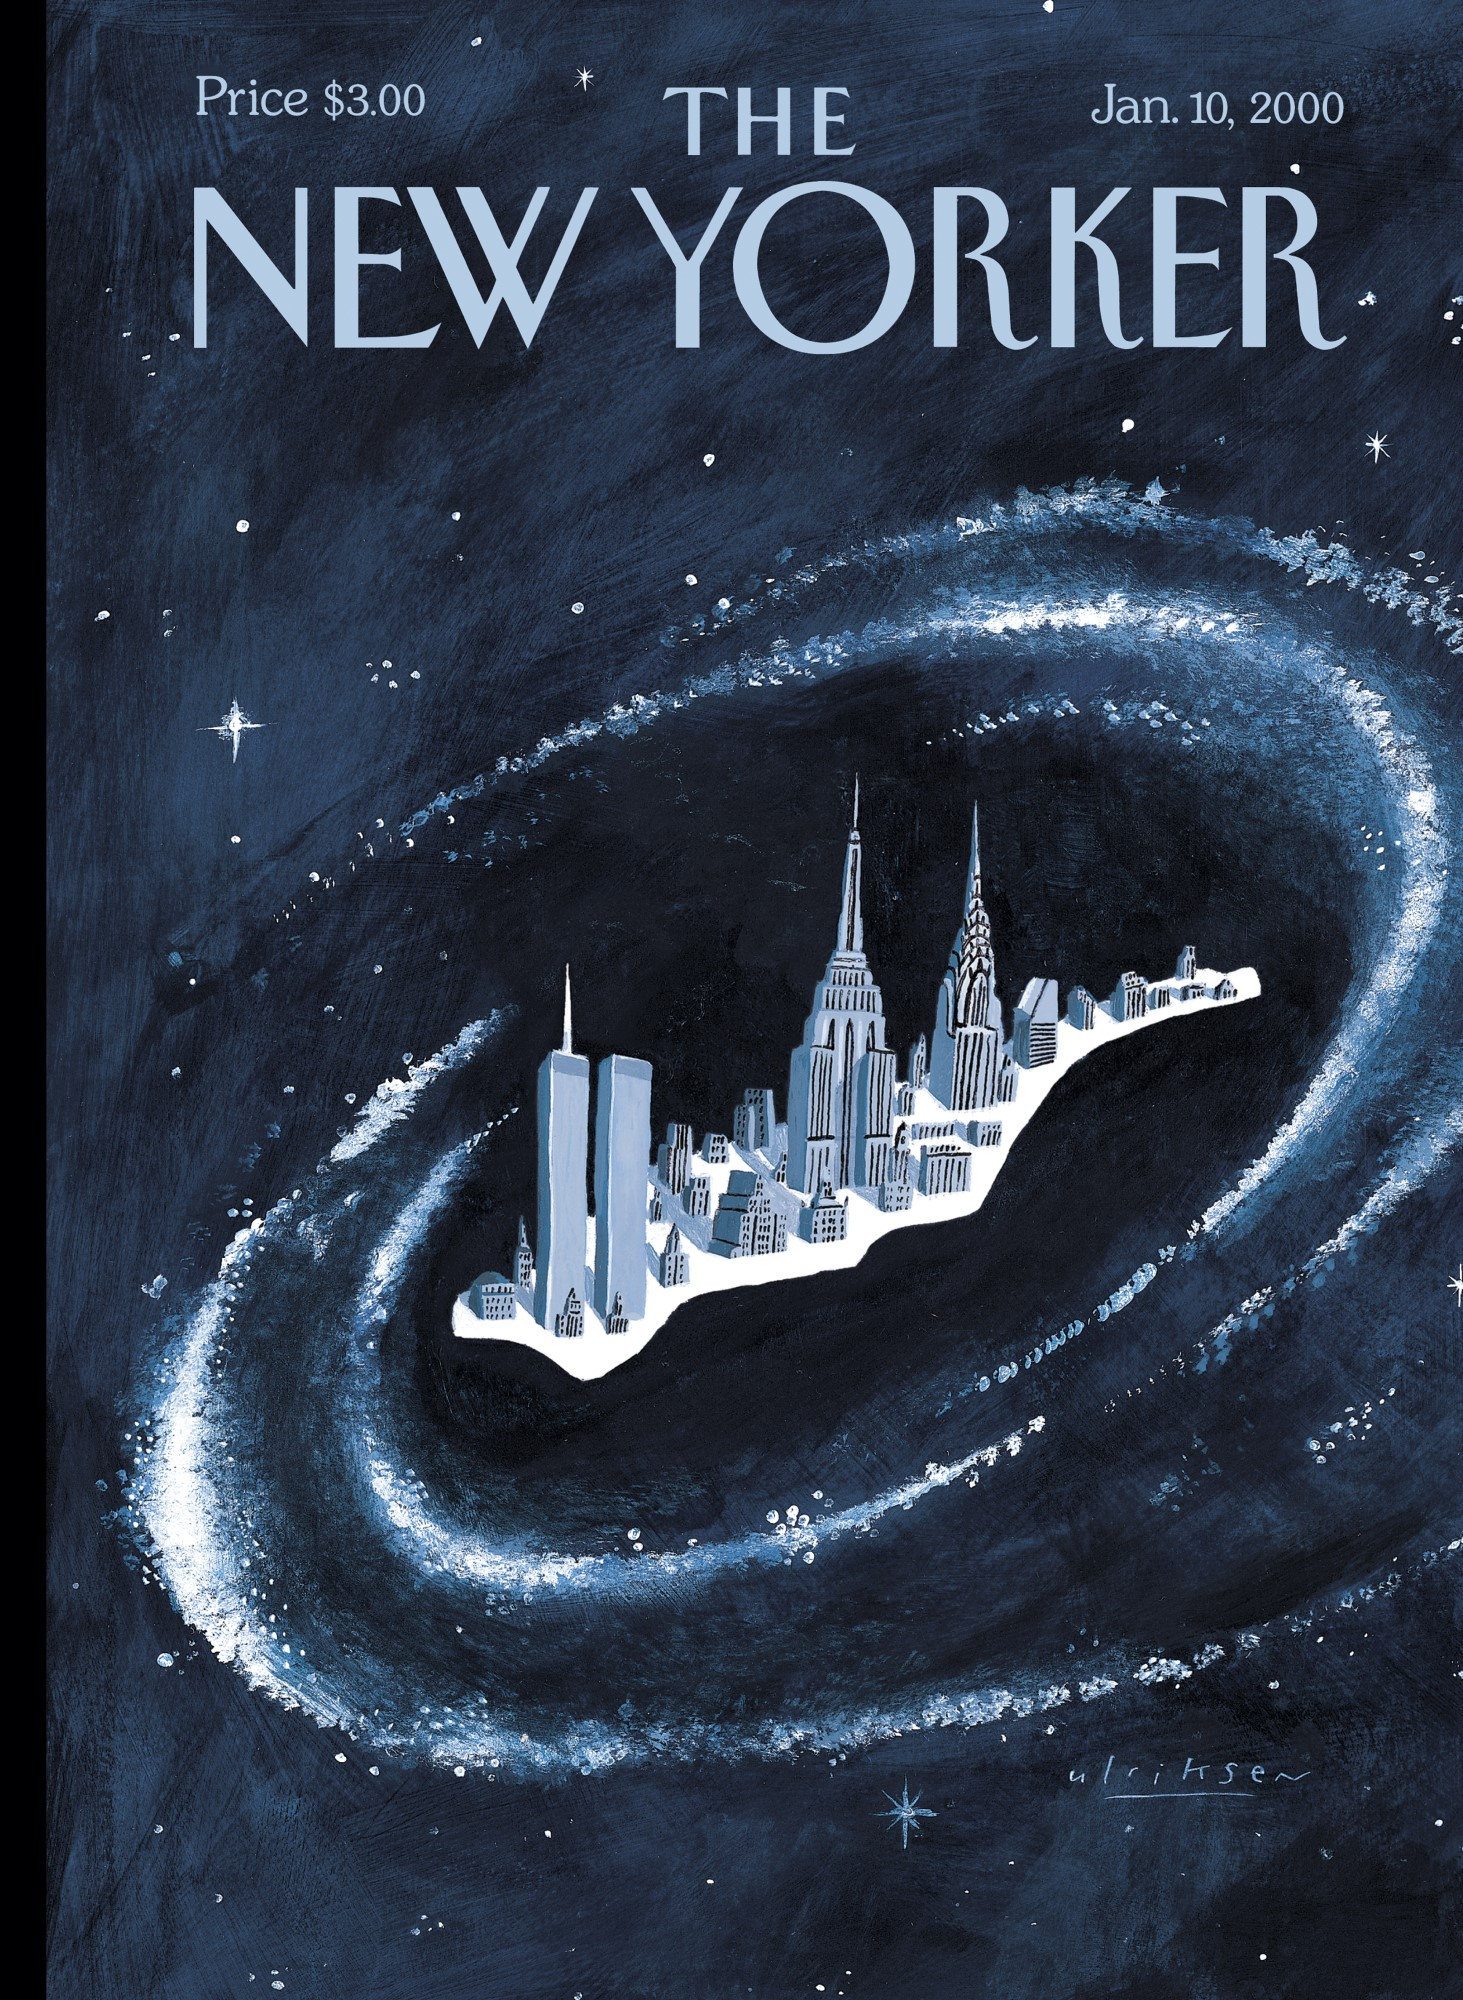 An illustrated cover of the New Yorker magazine depicts a miniature Manhattan island floating in a spiral galaxy. The World Trade Center, the Empire State Building, and the Chrysler Building stand out among shorter buildings. The galaxy is surrounded by white stars and navy-colored outer space.